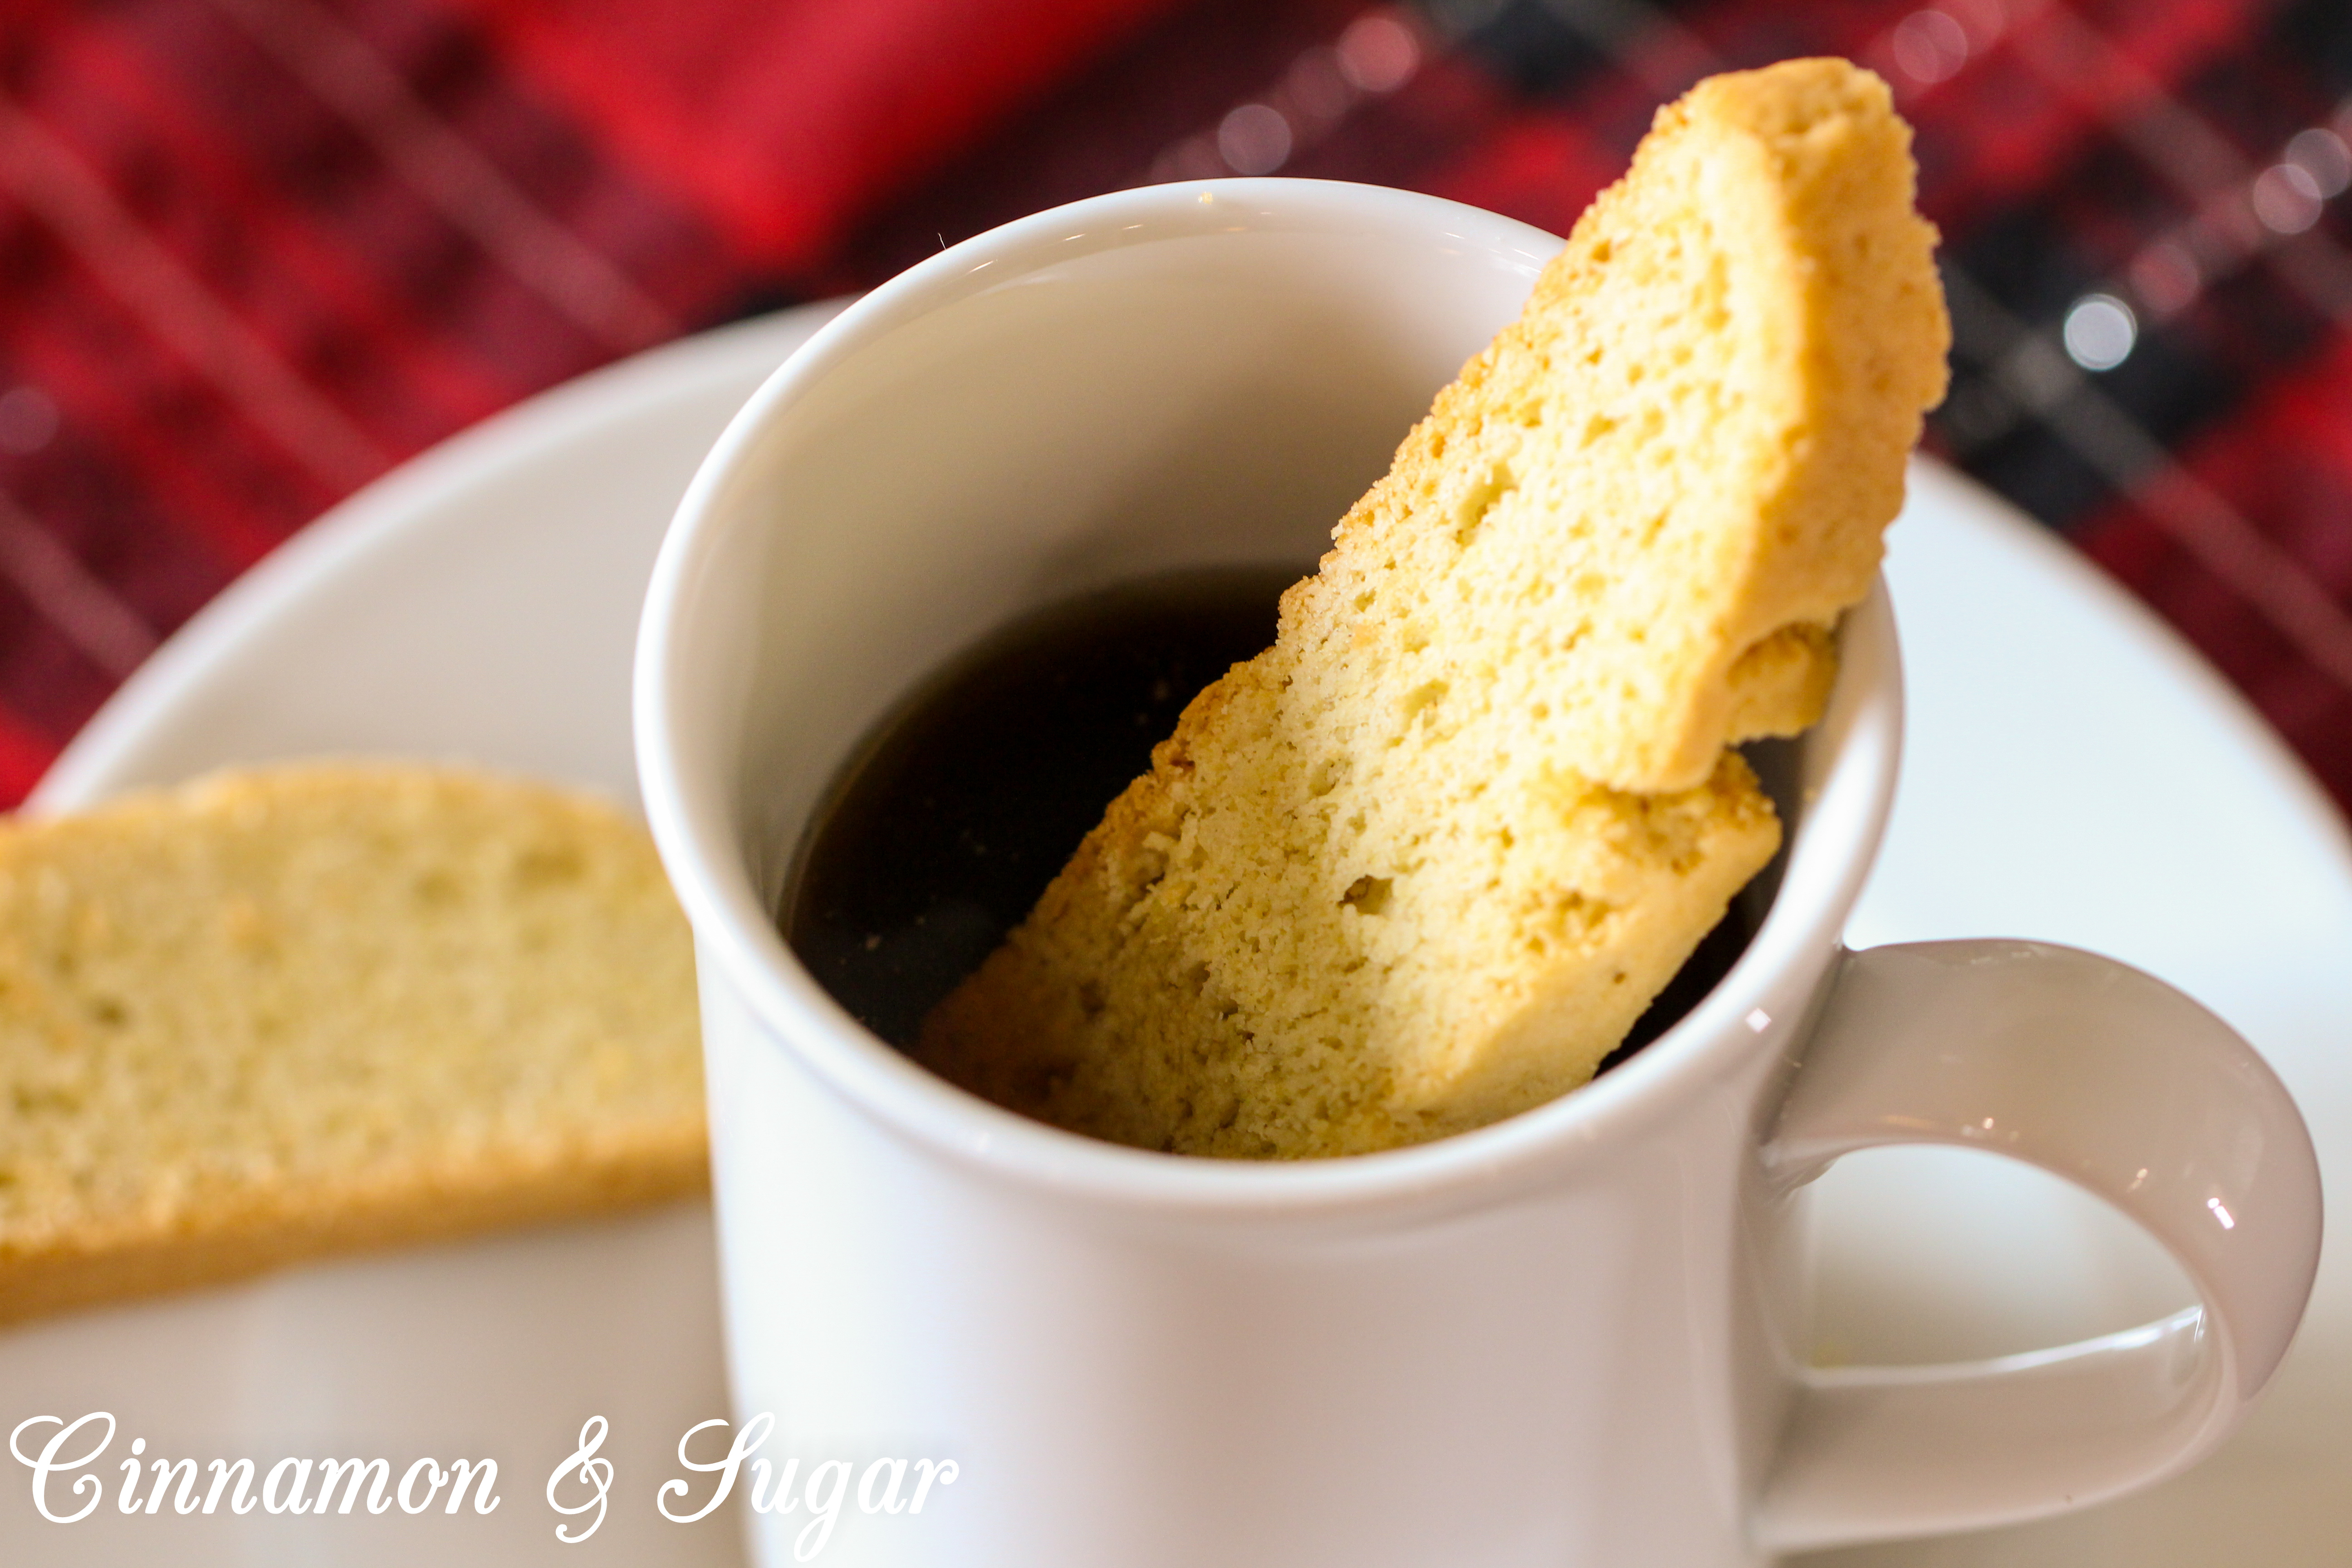 Paximathia - Spiced Greek Biscotti